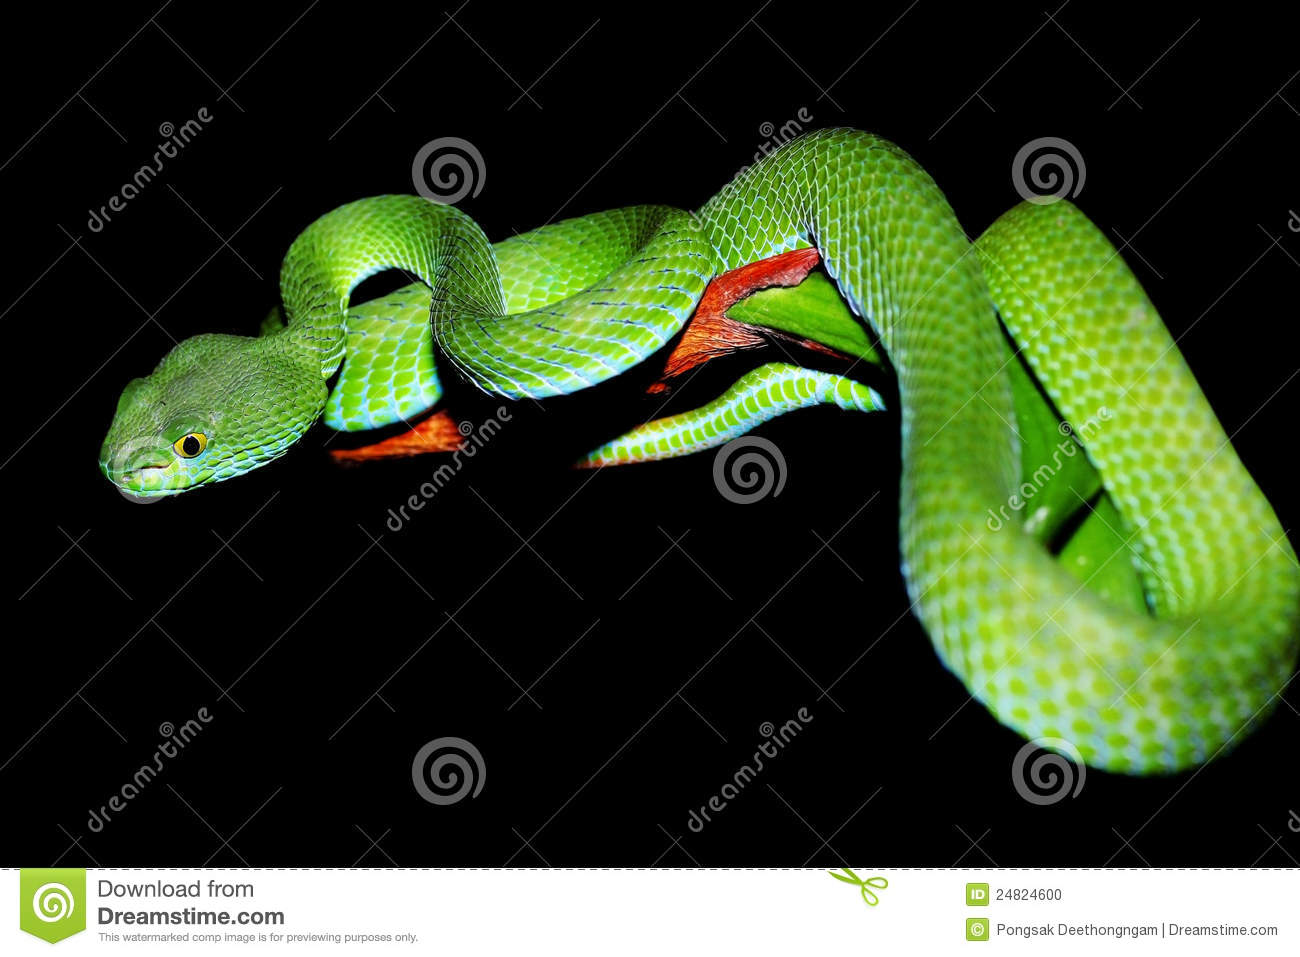 Green Pit Viper clipart #12, Download drawings